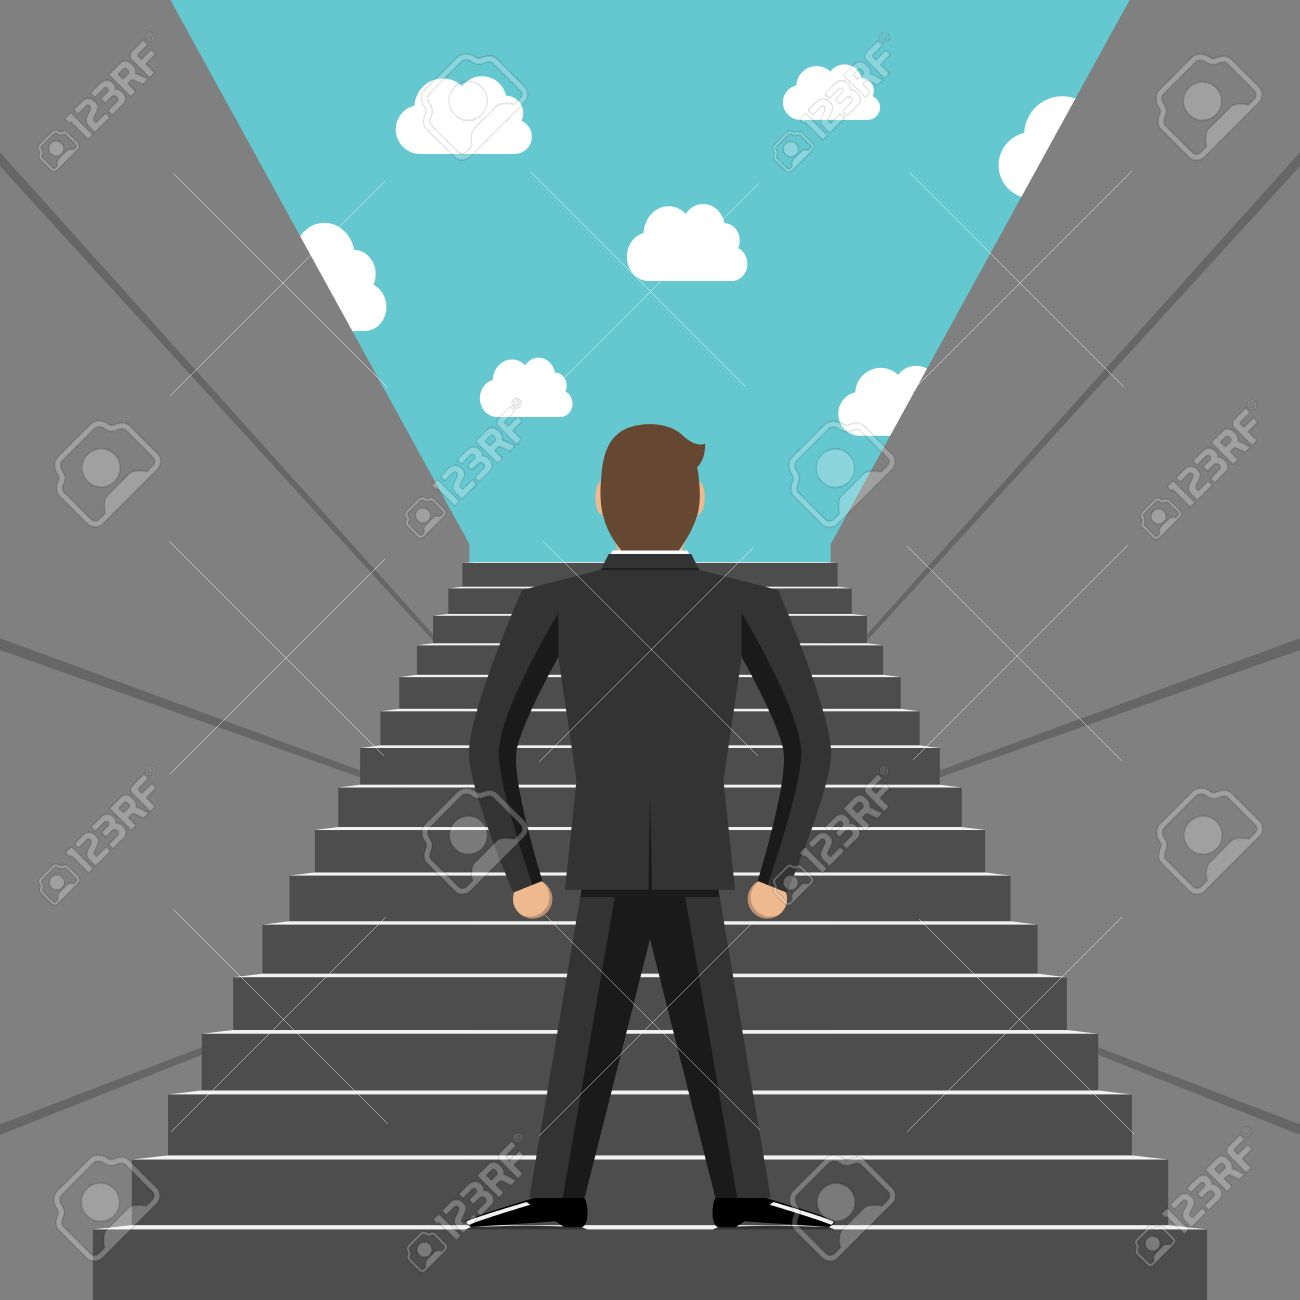 ambition graduate stock photos pictures royalty ambition ambition graduate ambitious successful businessman climbing steps back view career ladder stairs